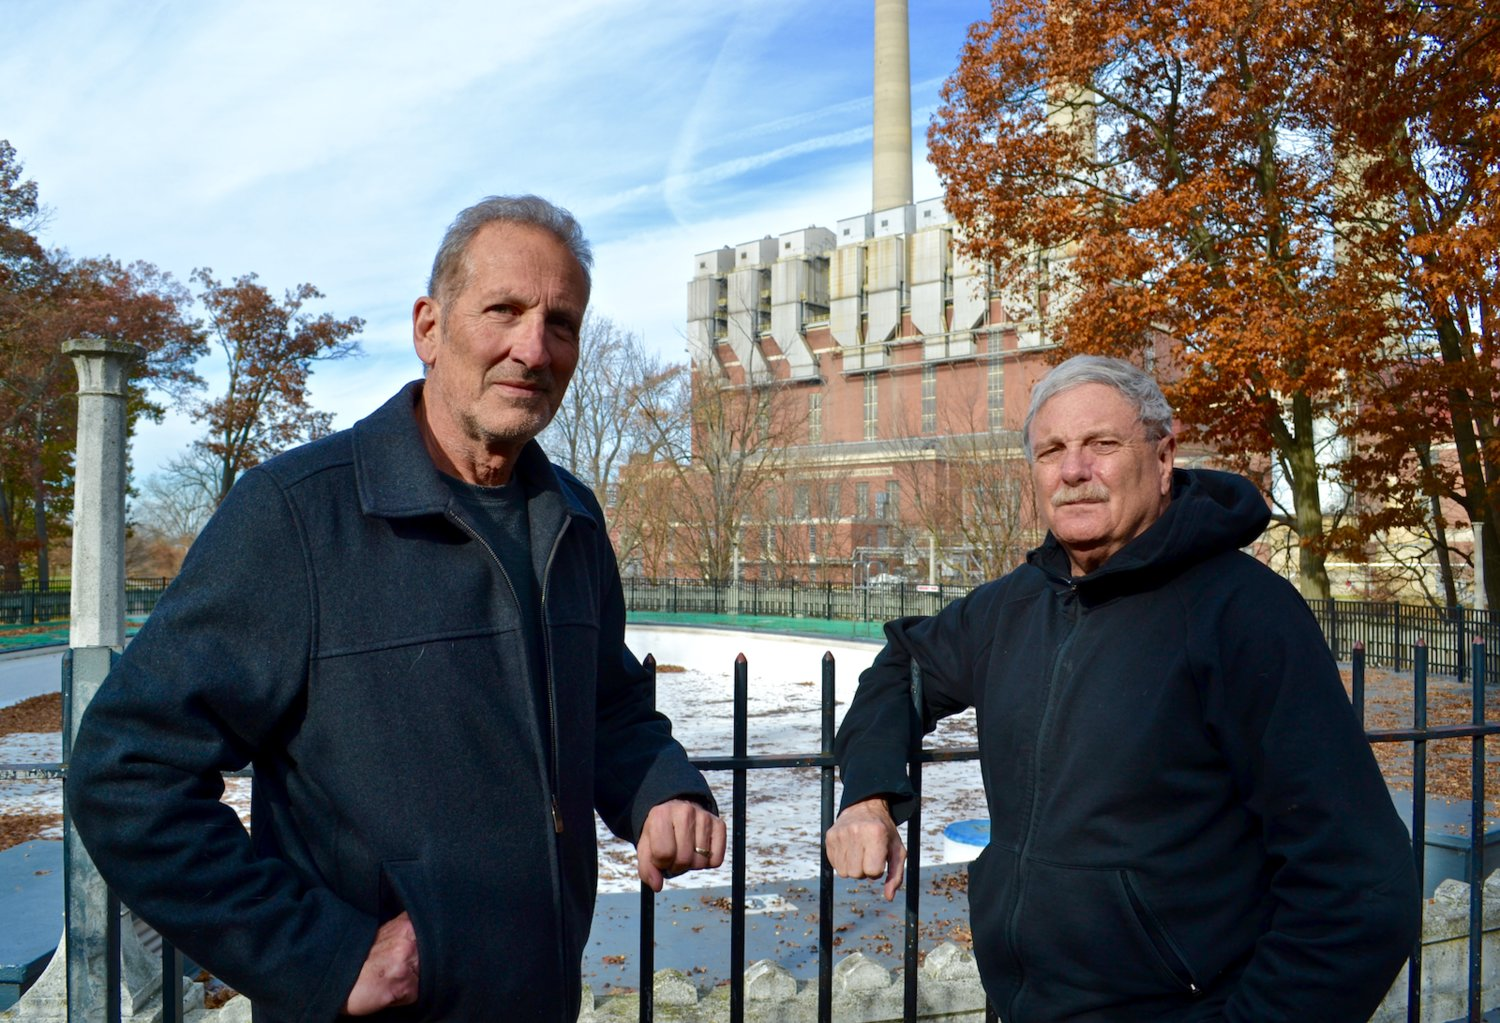 Dale Schrader (left) and Bill Castanier are considering a joint fundraising effort to help fund the fixes.